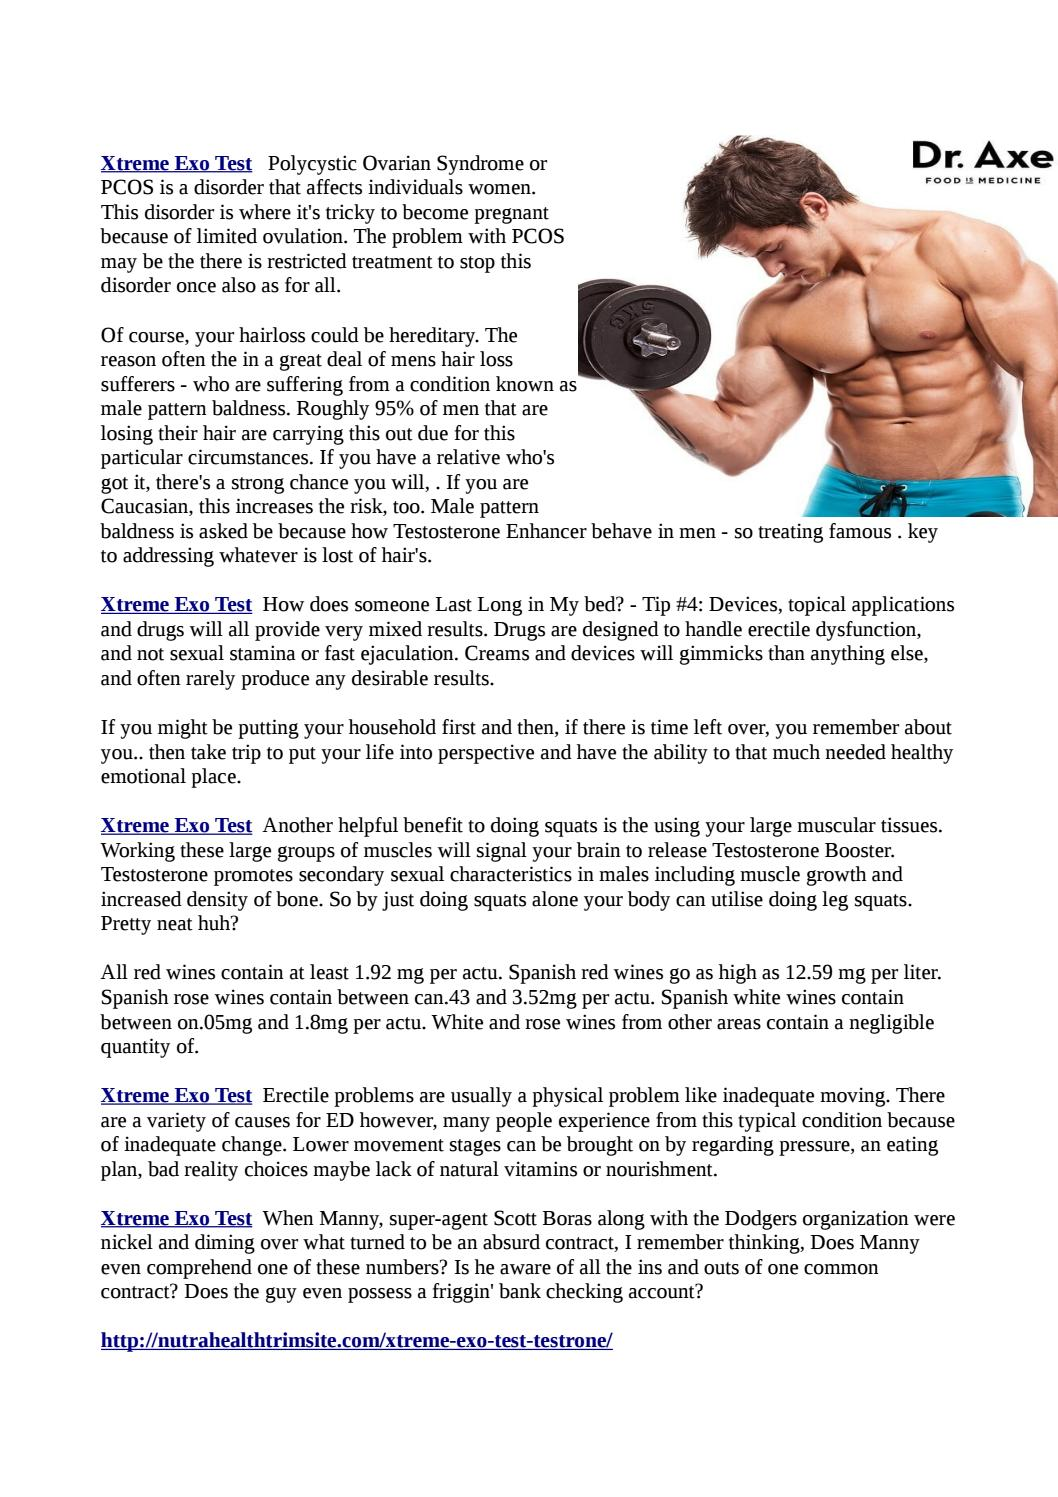 Top 3 bodybuilding guidelines for skinny guys to build muscle fast